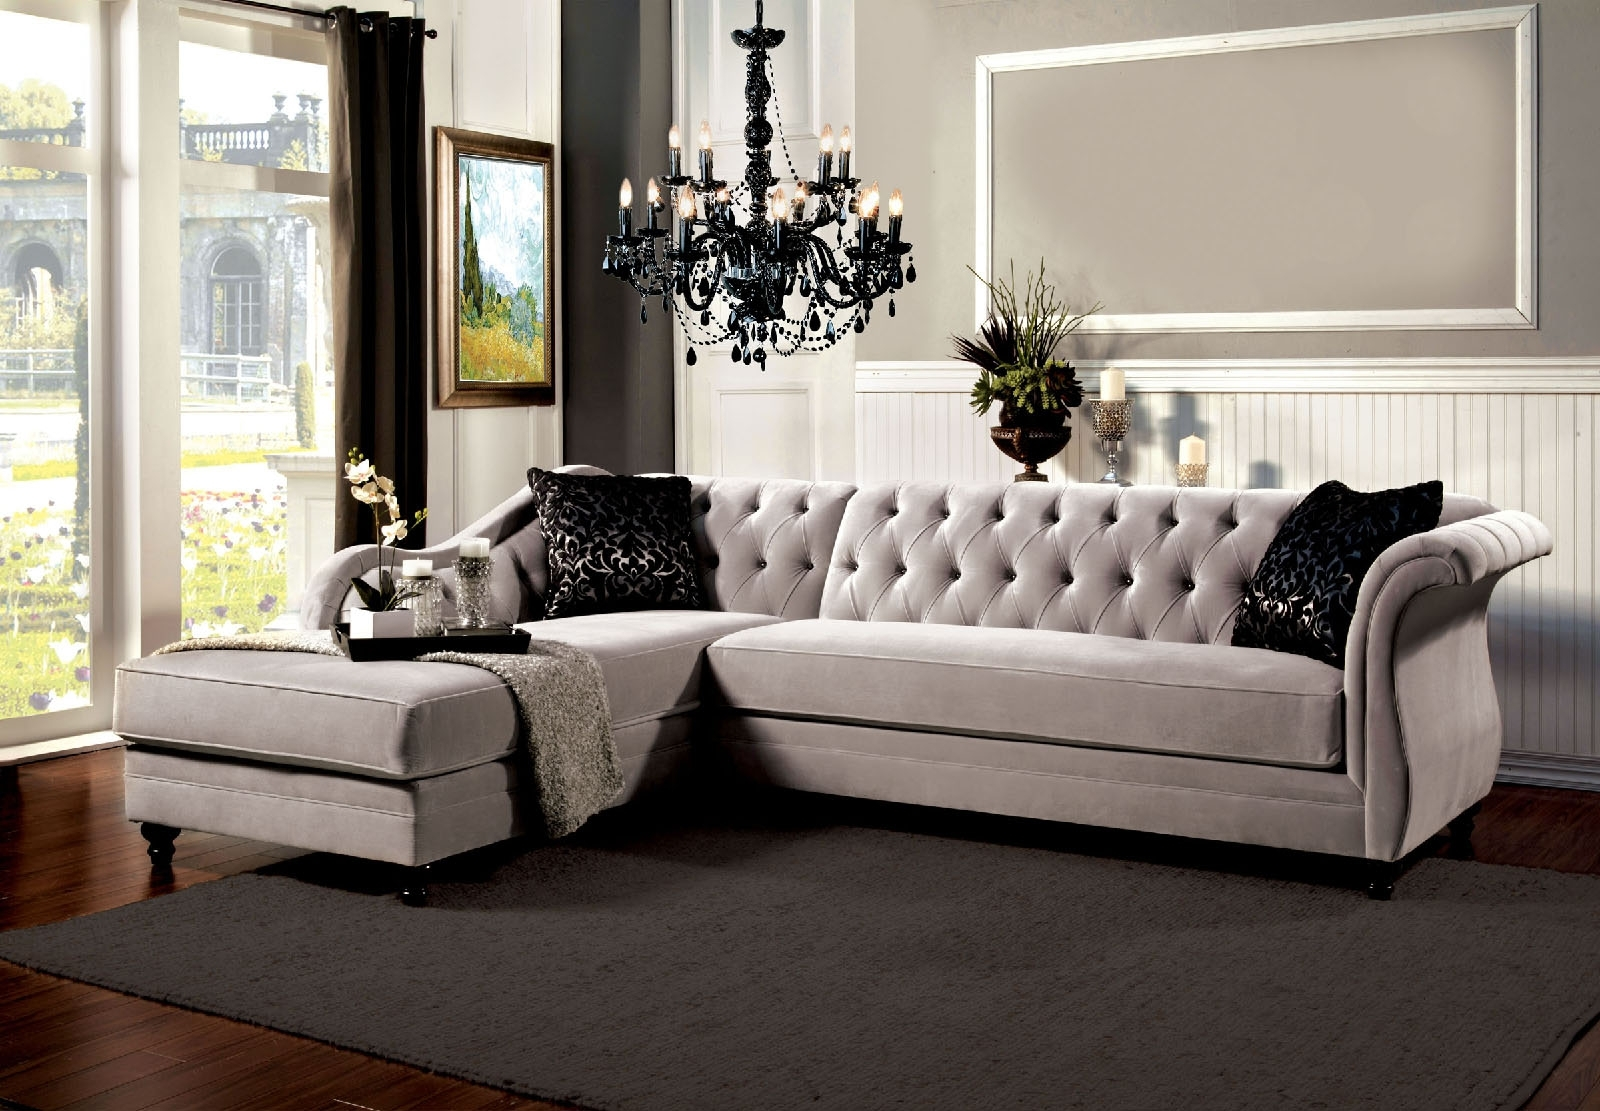 Tufted Sectional Sofas Intended For Trendy Grey Vintage Tufted Sectional Sofa (View 5 of 20)